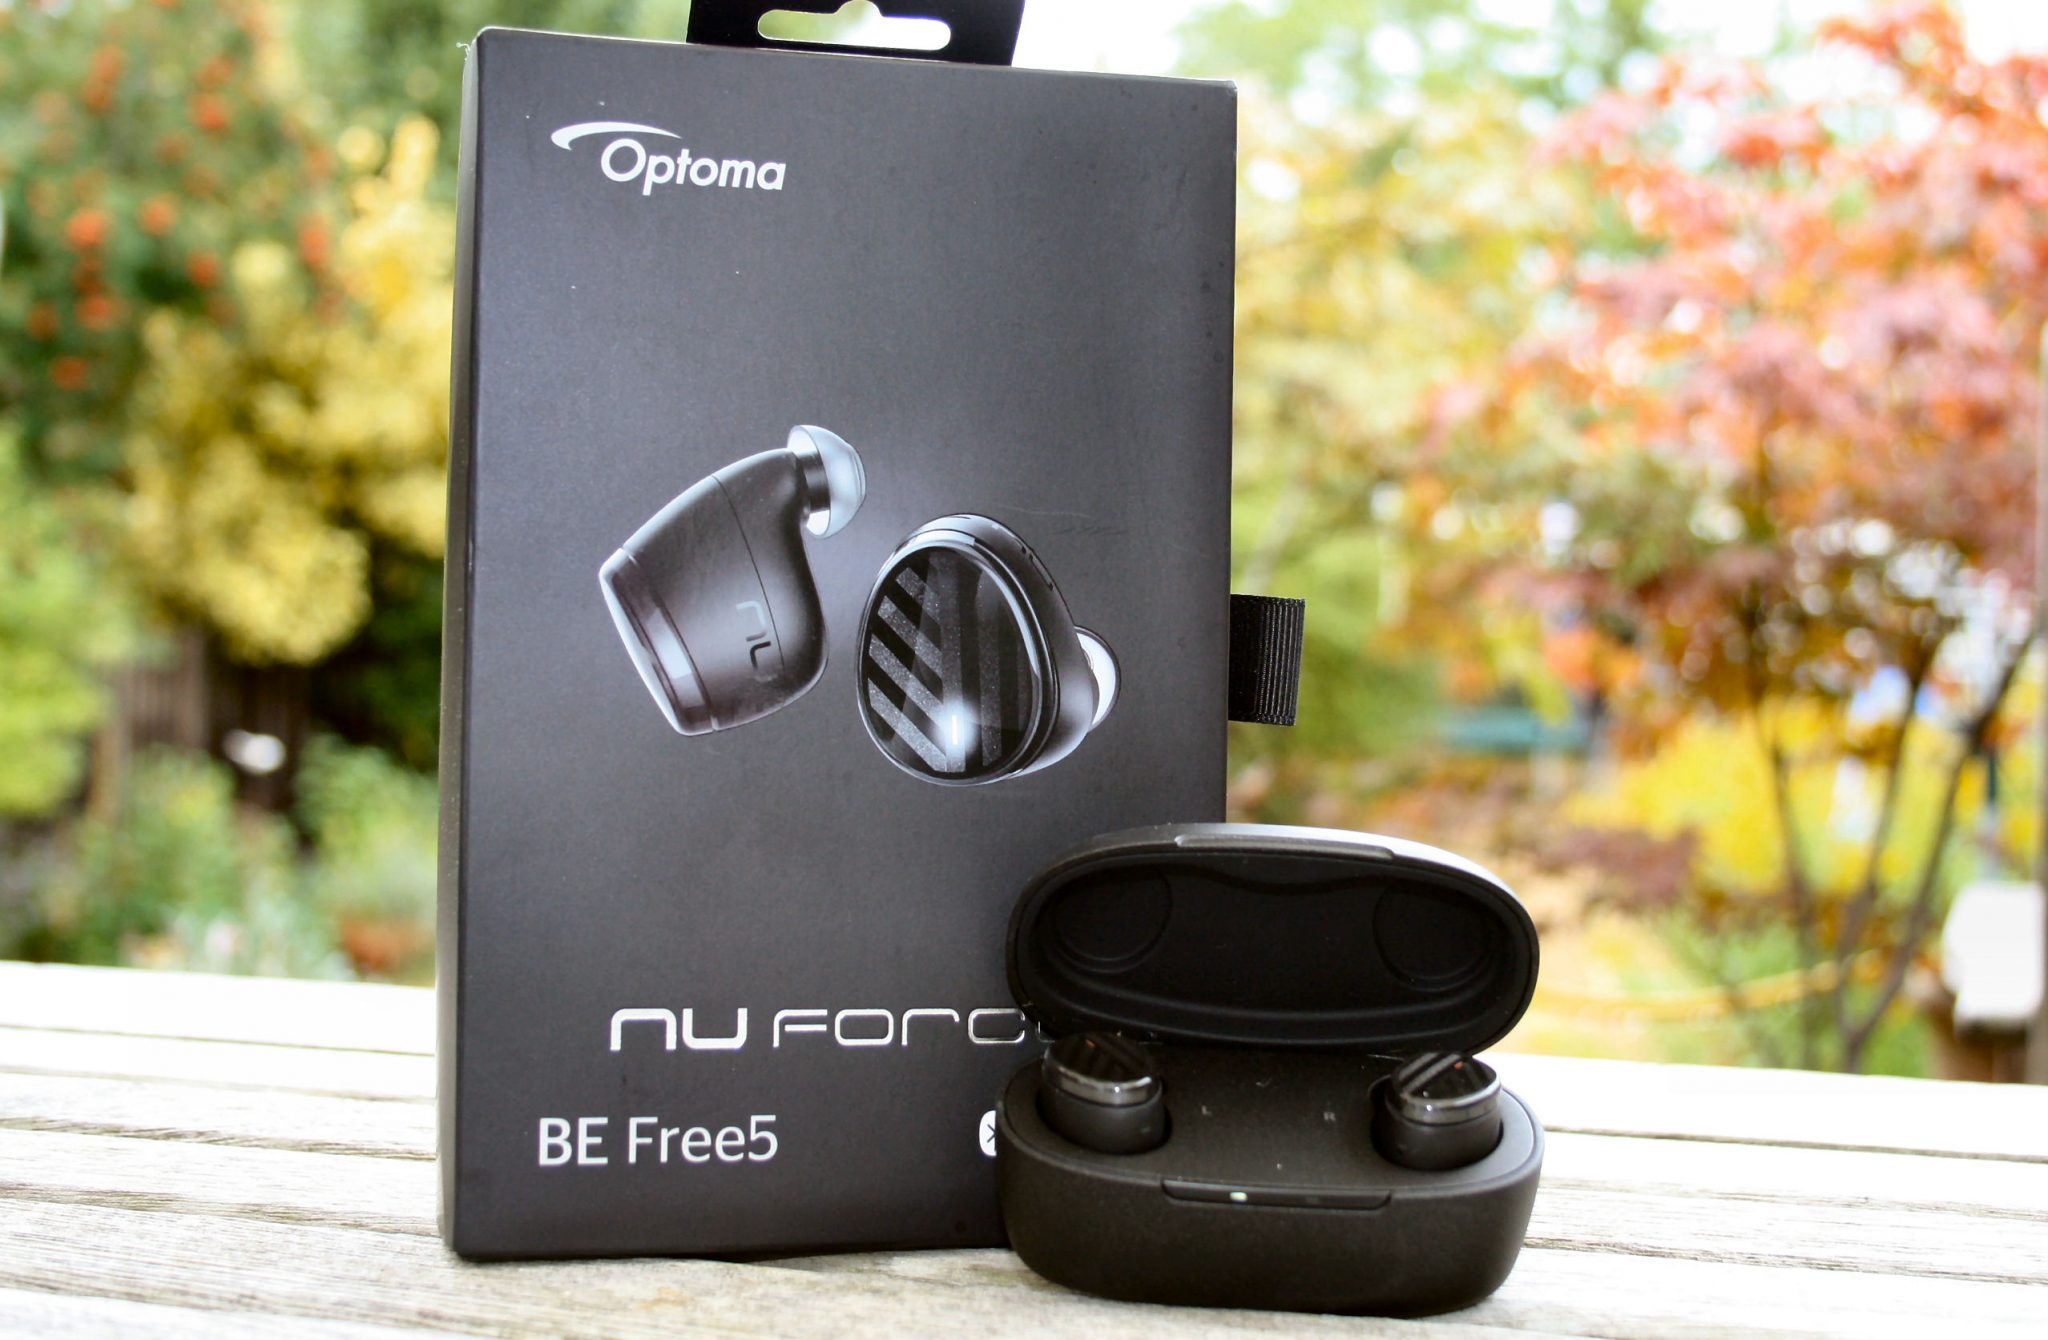 Optoma NuForce BE Free5 Review